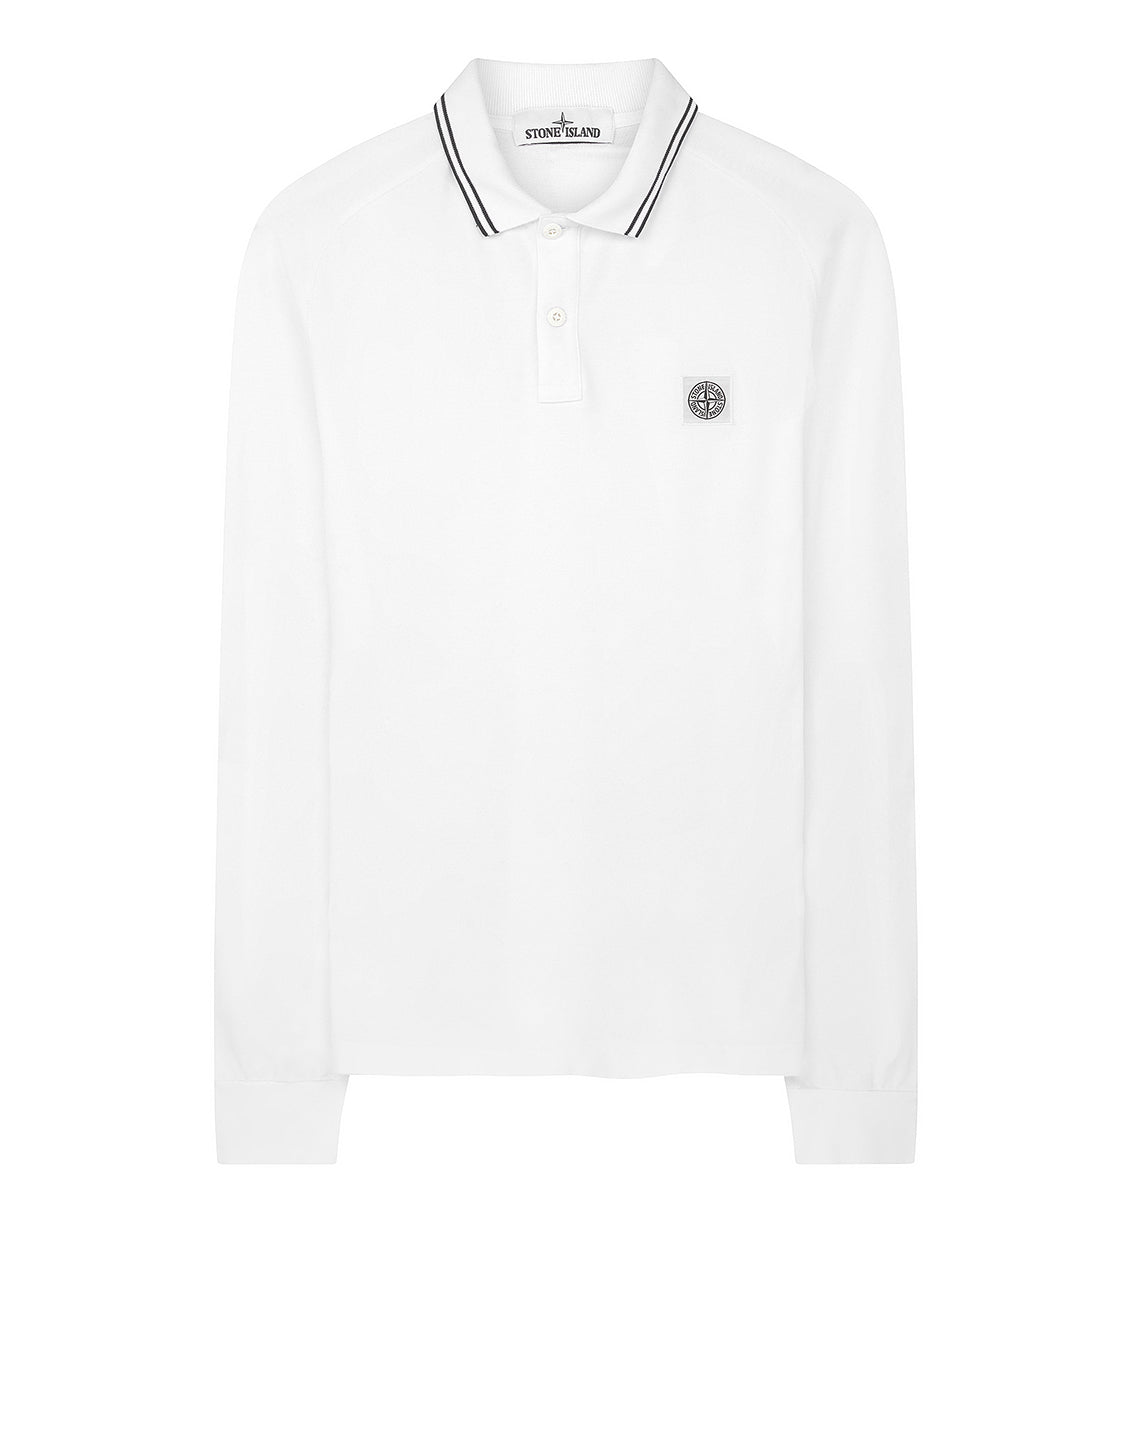 22016 Long Sleeve Polo Shirt in White